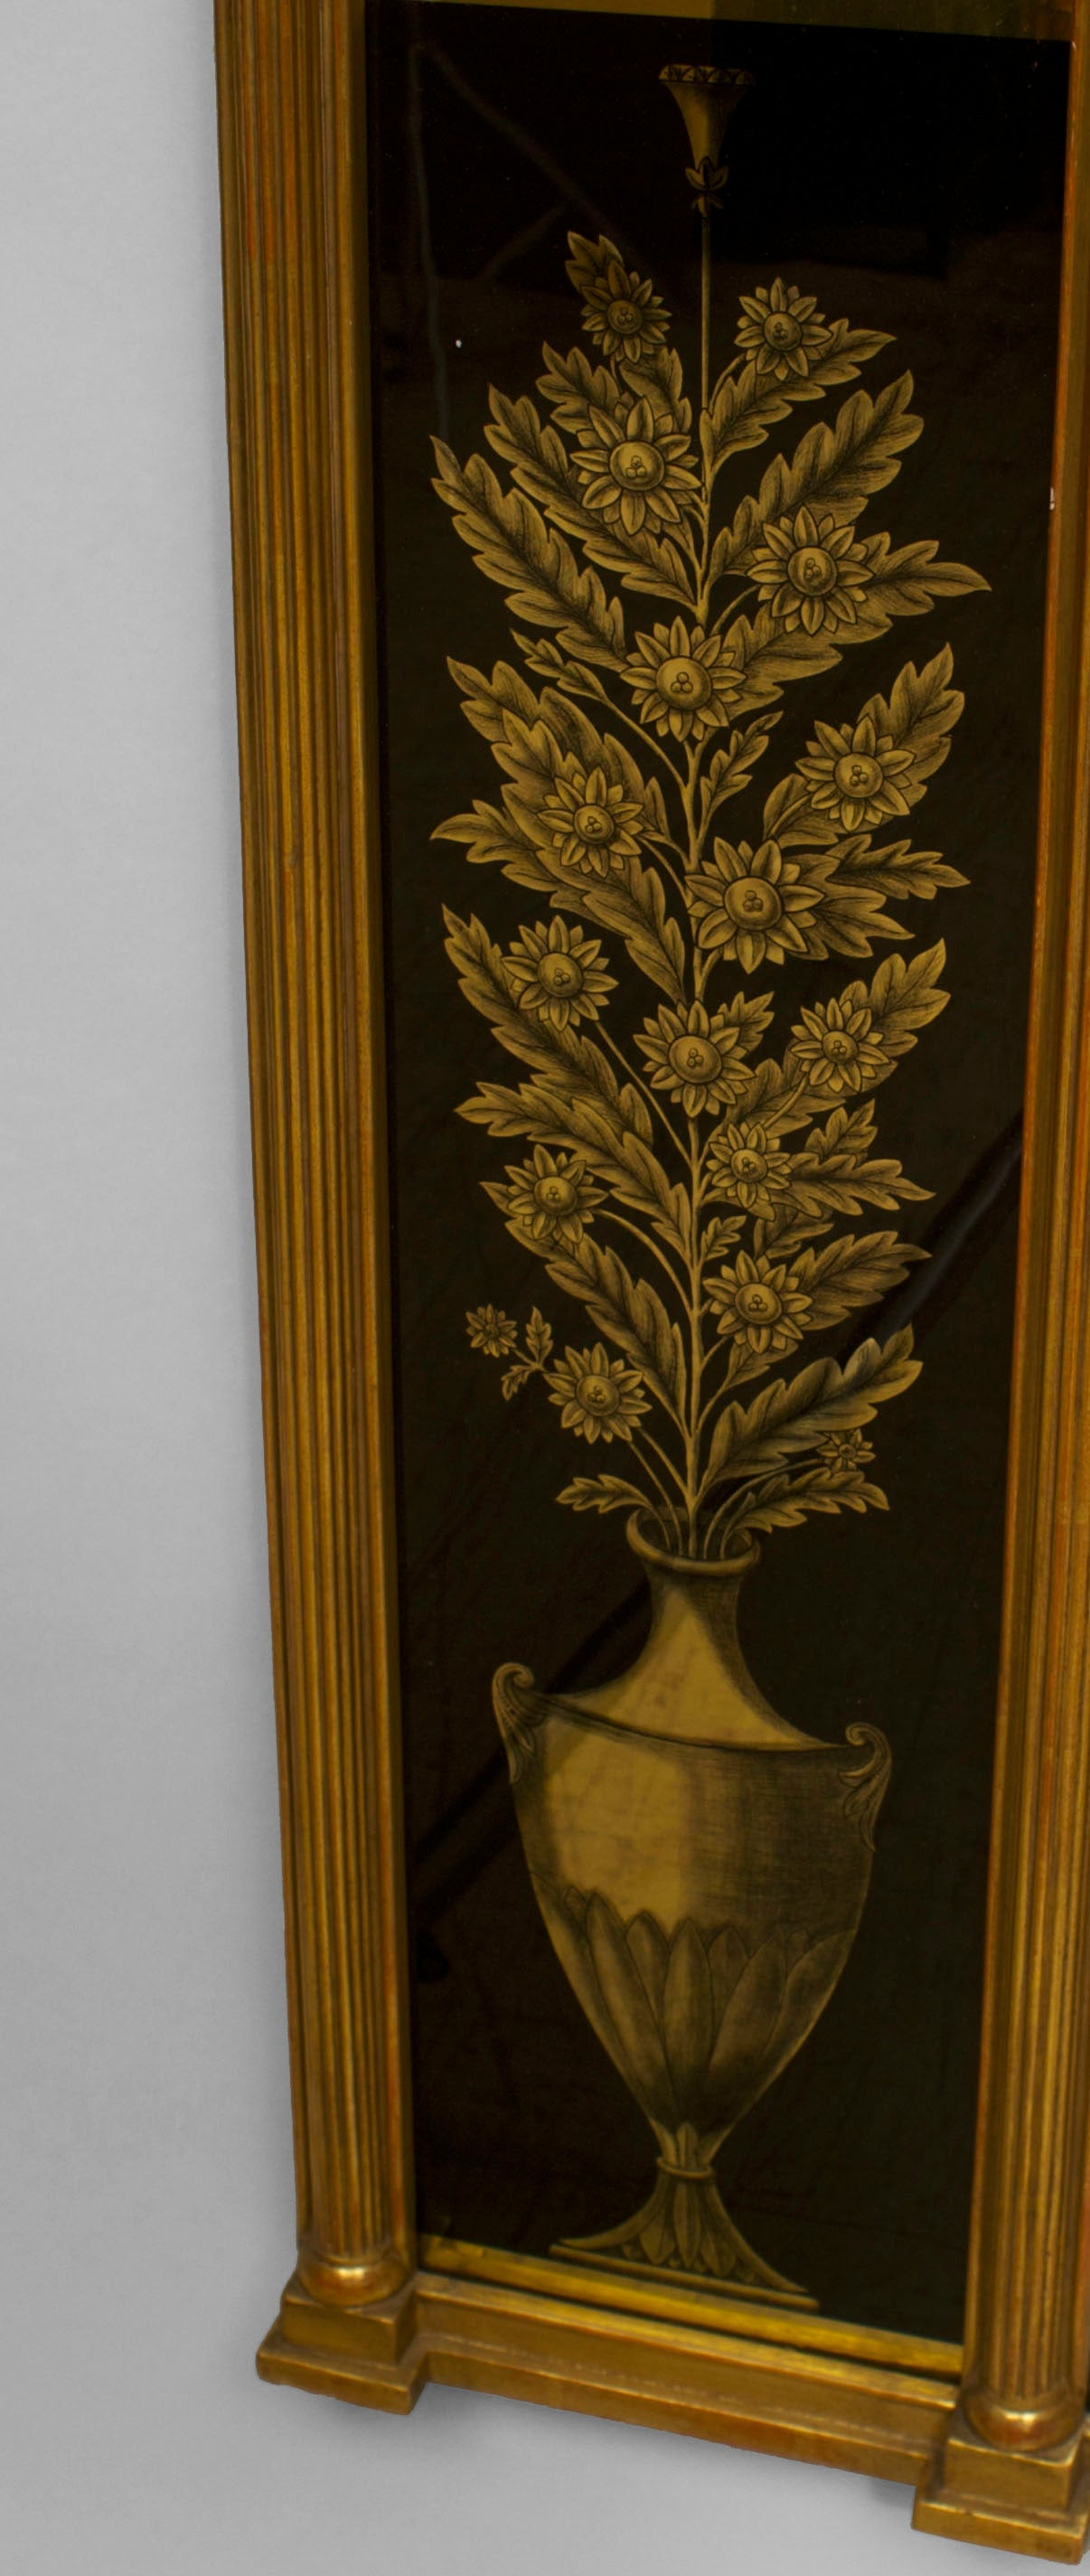 Italian Neo-classic gilt carved frame wall mirror surrounded with black and gold decorated reverse glass panels with urns, griffins, & lyre designs (19th Cent-1 panel cracked)